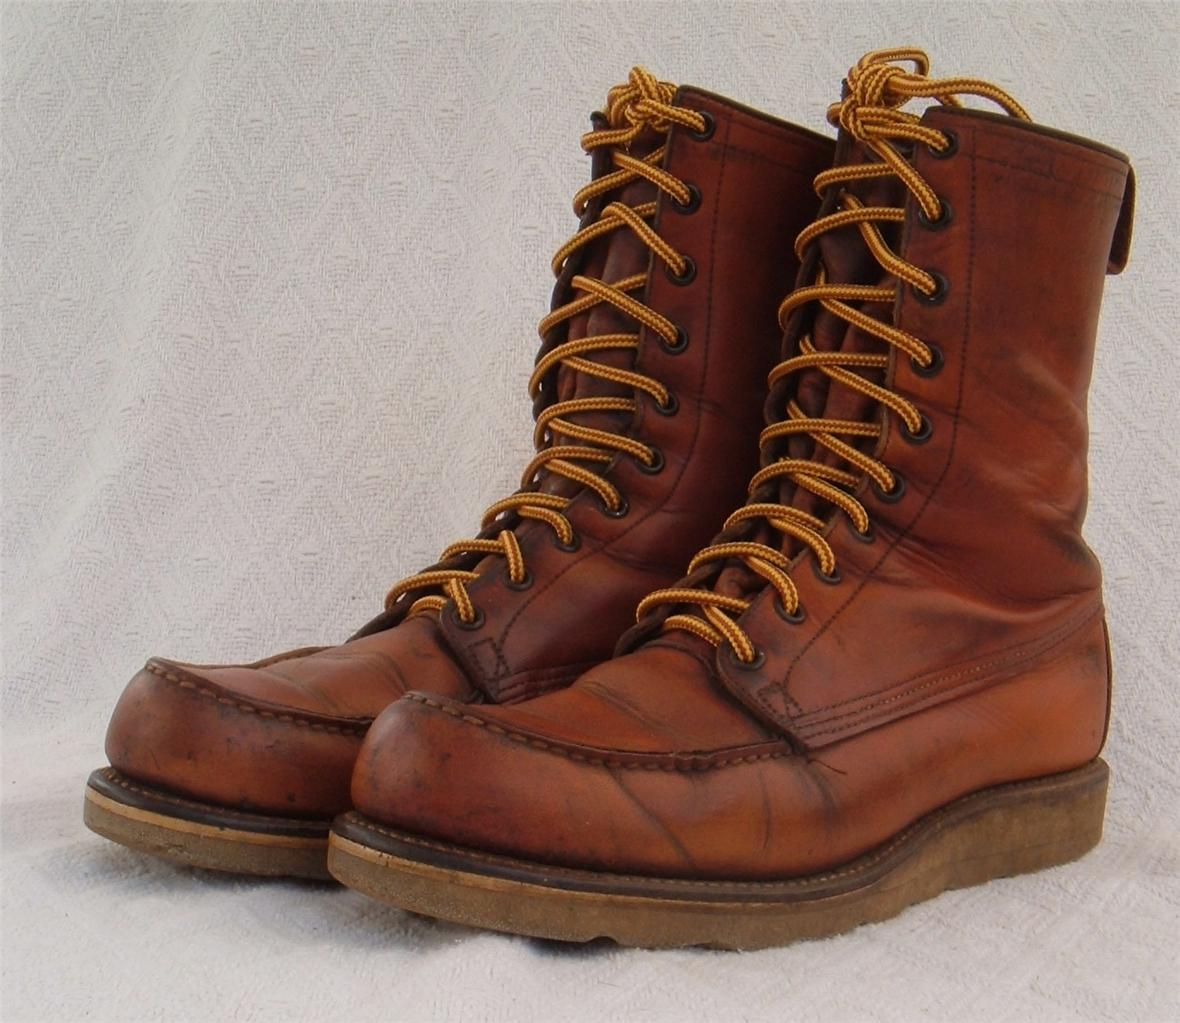 Vintage Red Wing Boots i8WdYzT4